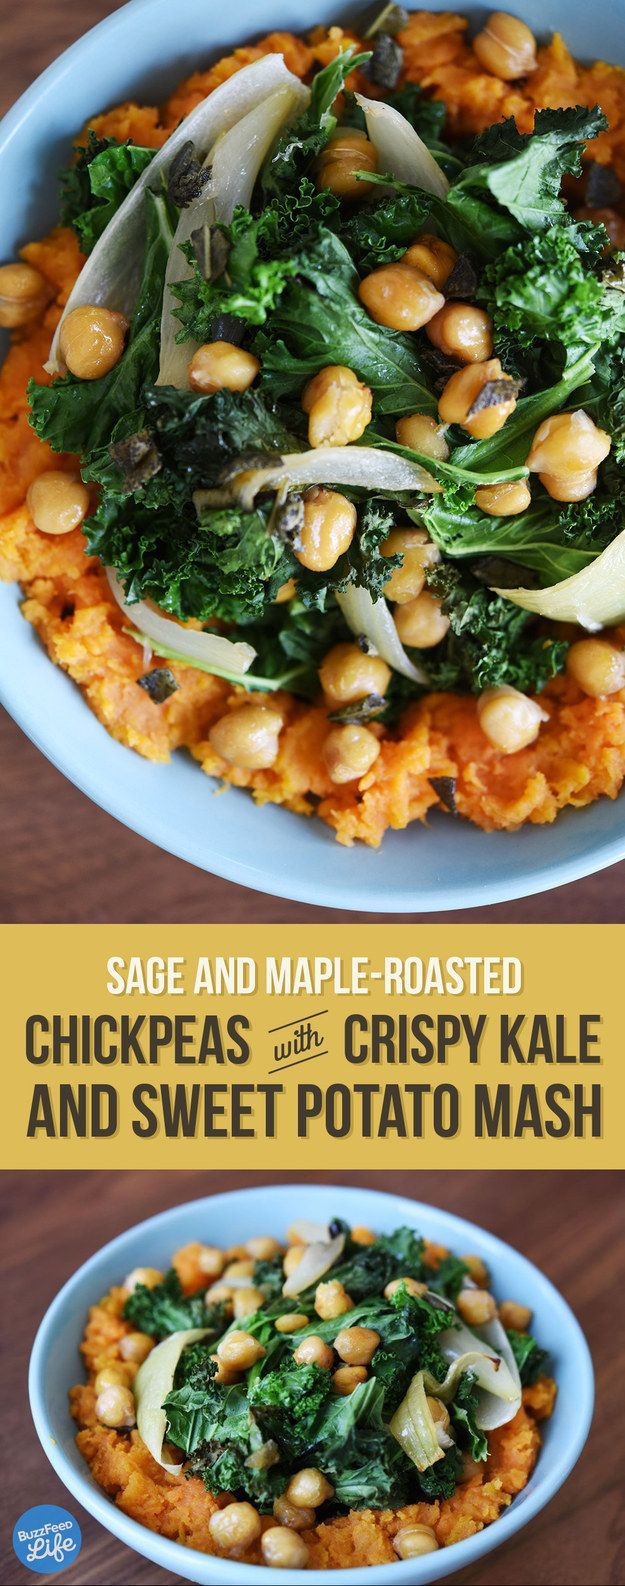 3. Sage and Maple-Roasted Chickpeas With Crispy Kale and Sweet Potato Mash | 5 Delicious Dinners To Make On A Weeknight